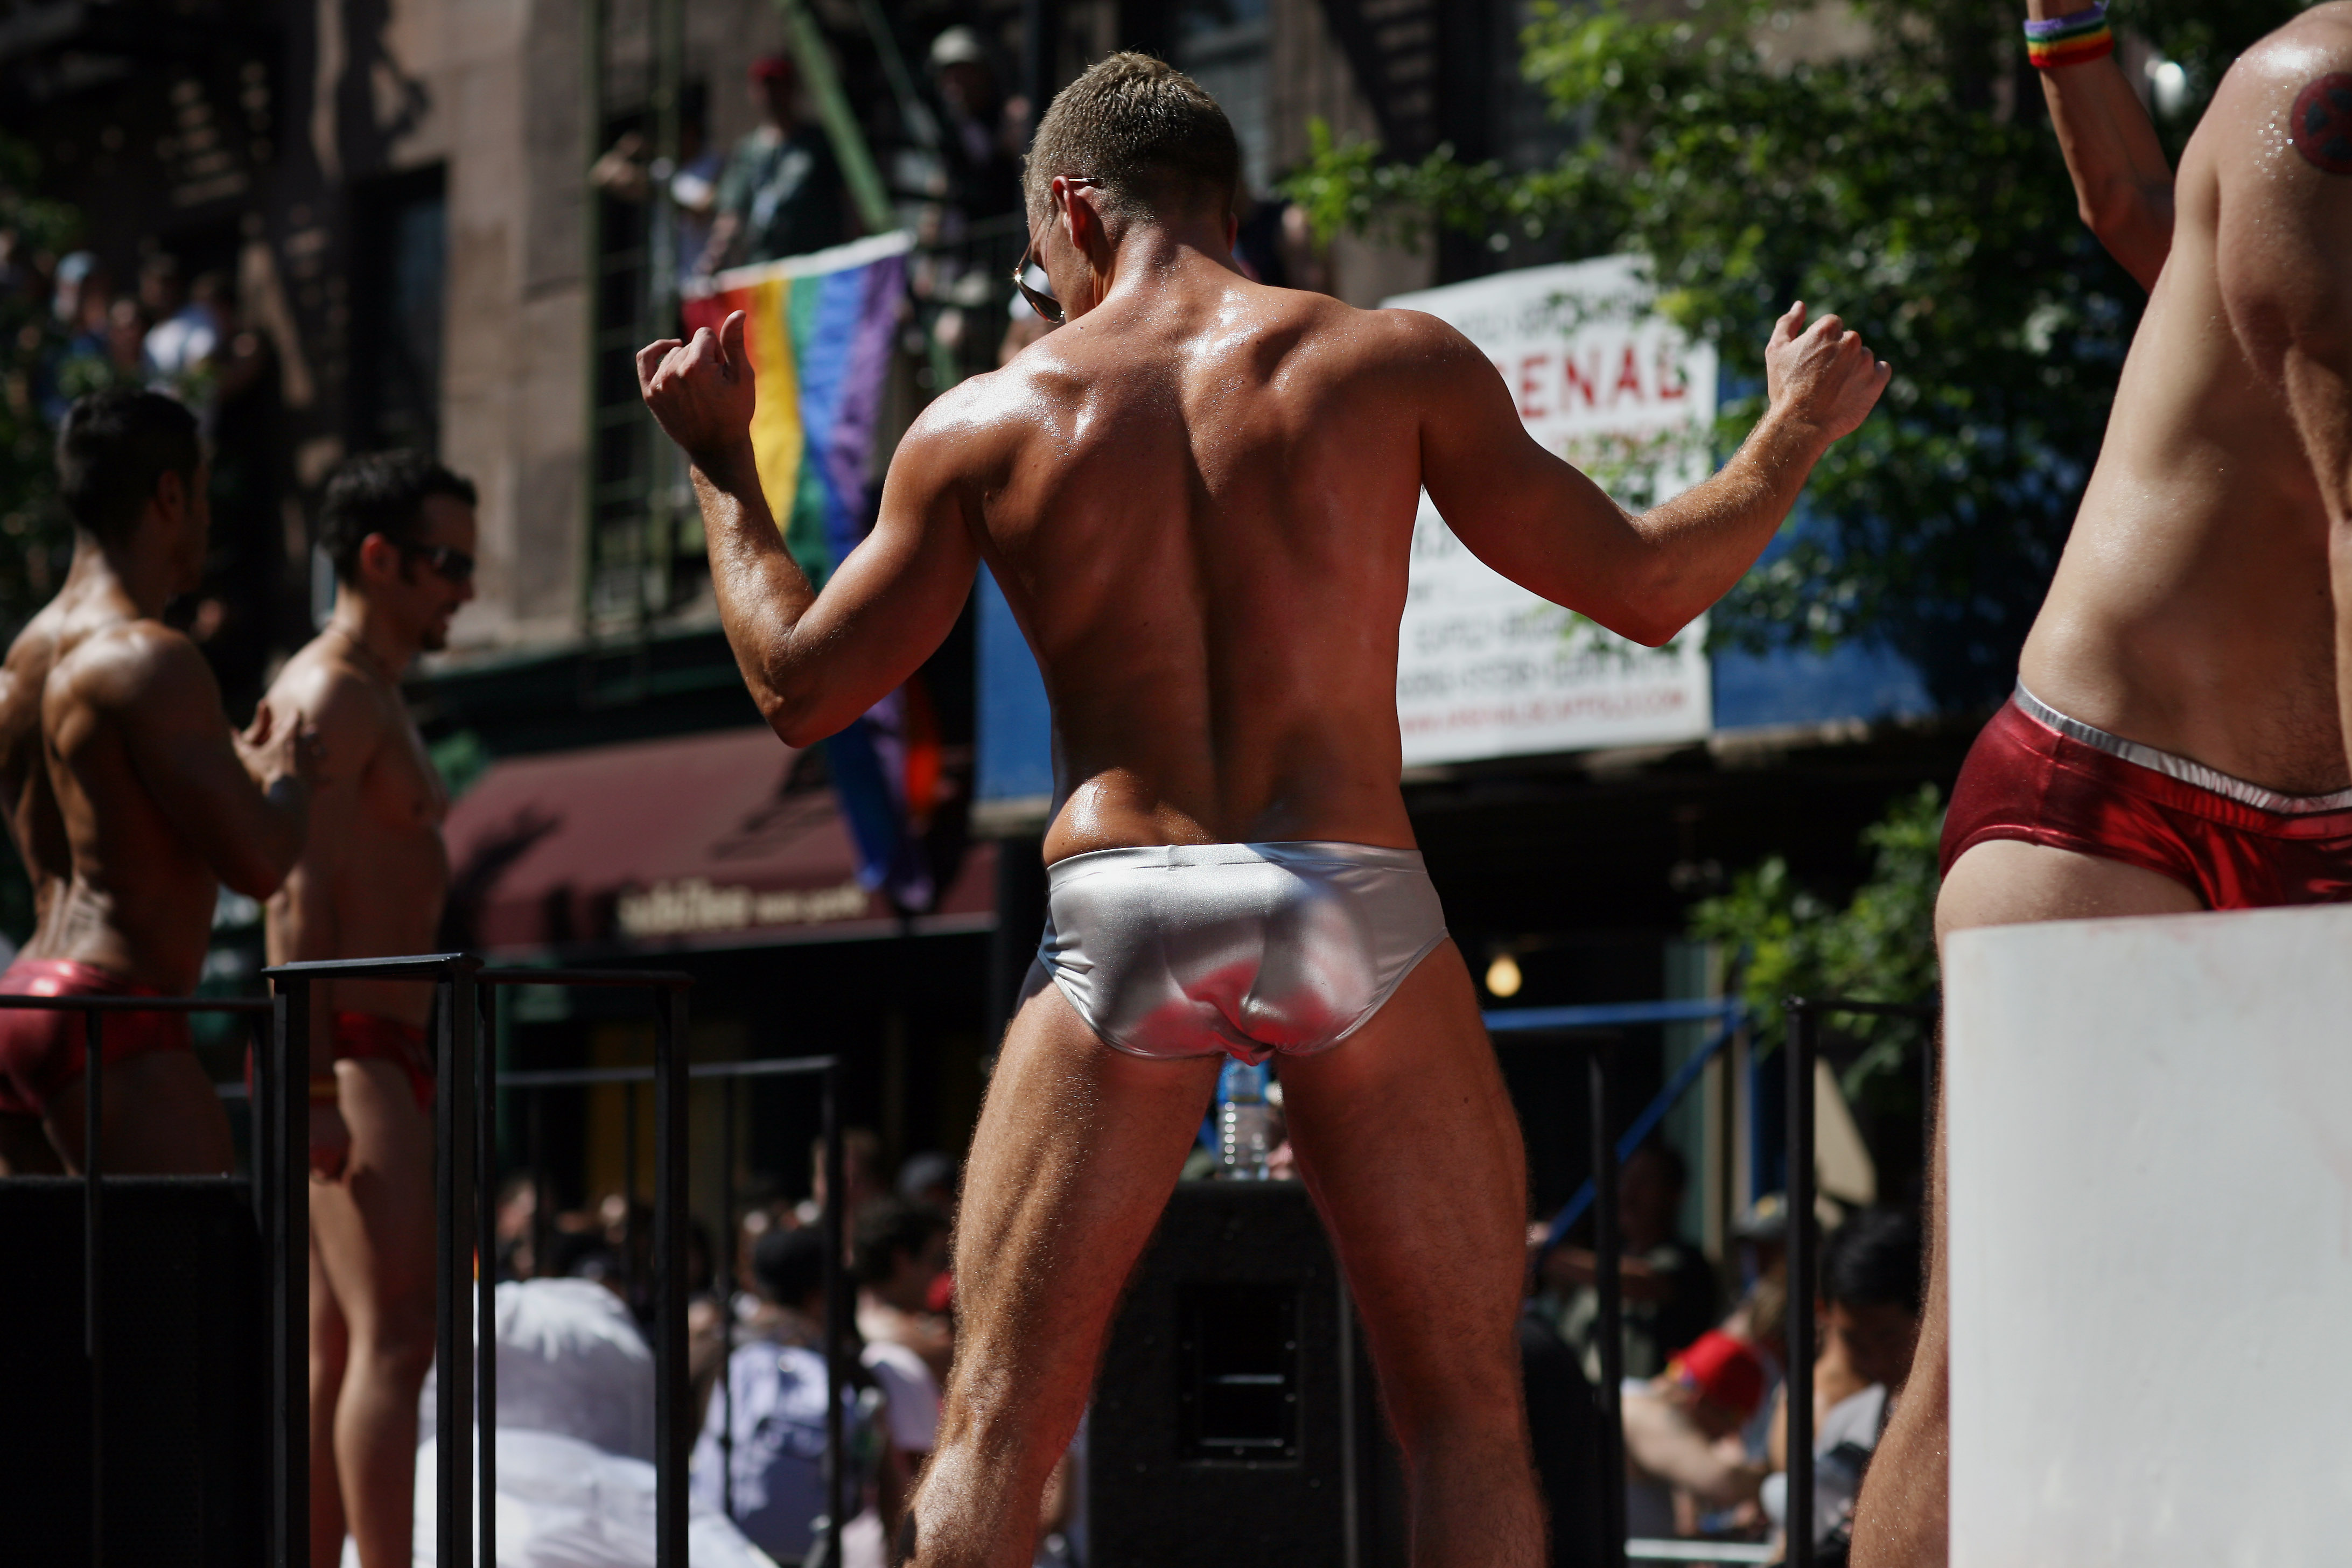 A man in the New York Pride Parade wearing shiny silver briefs and nothing else.